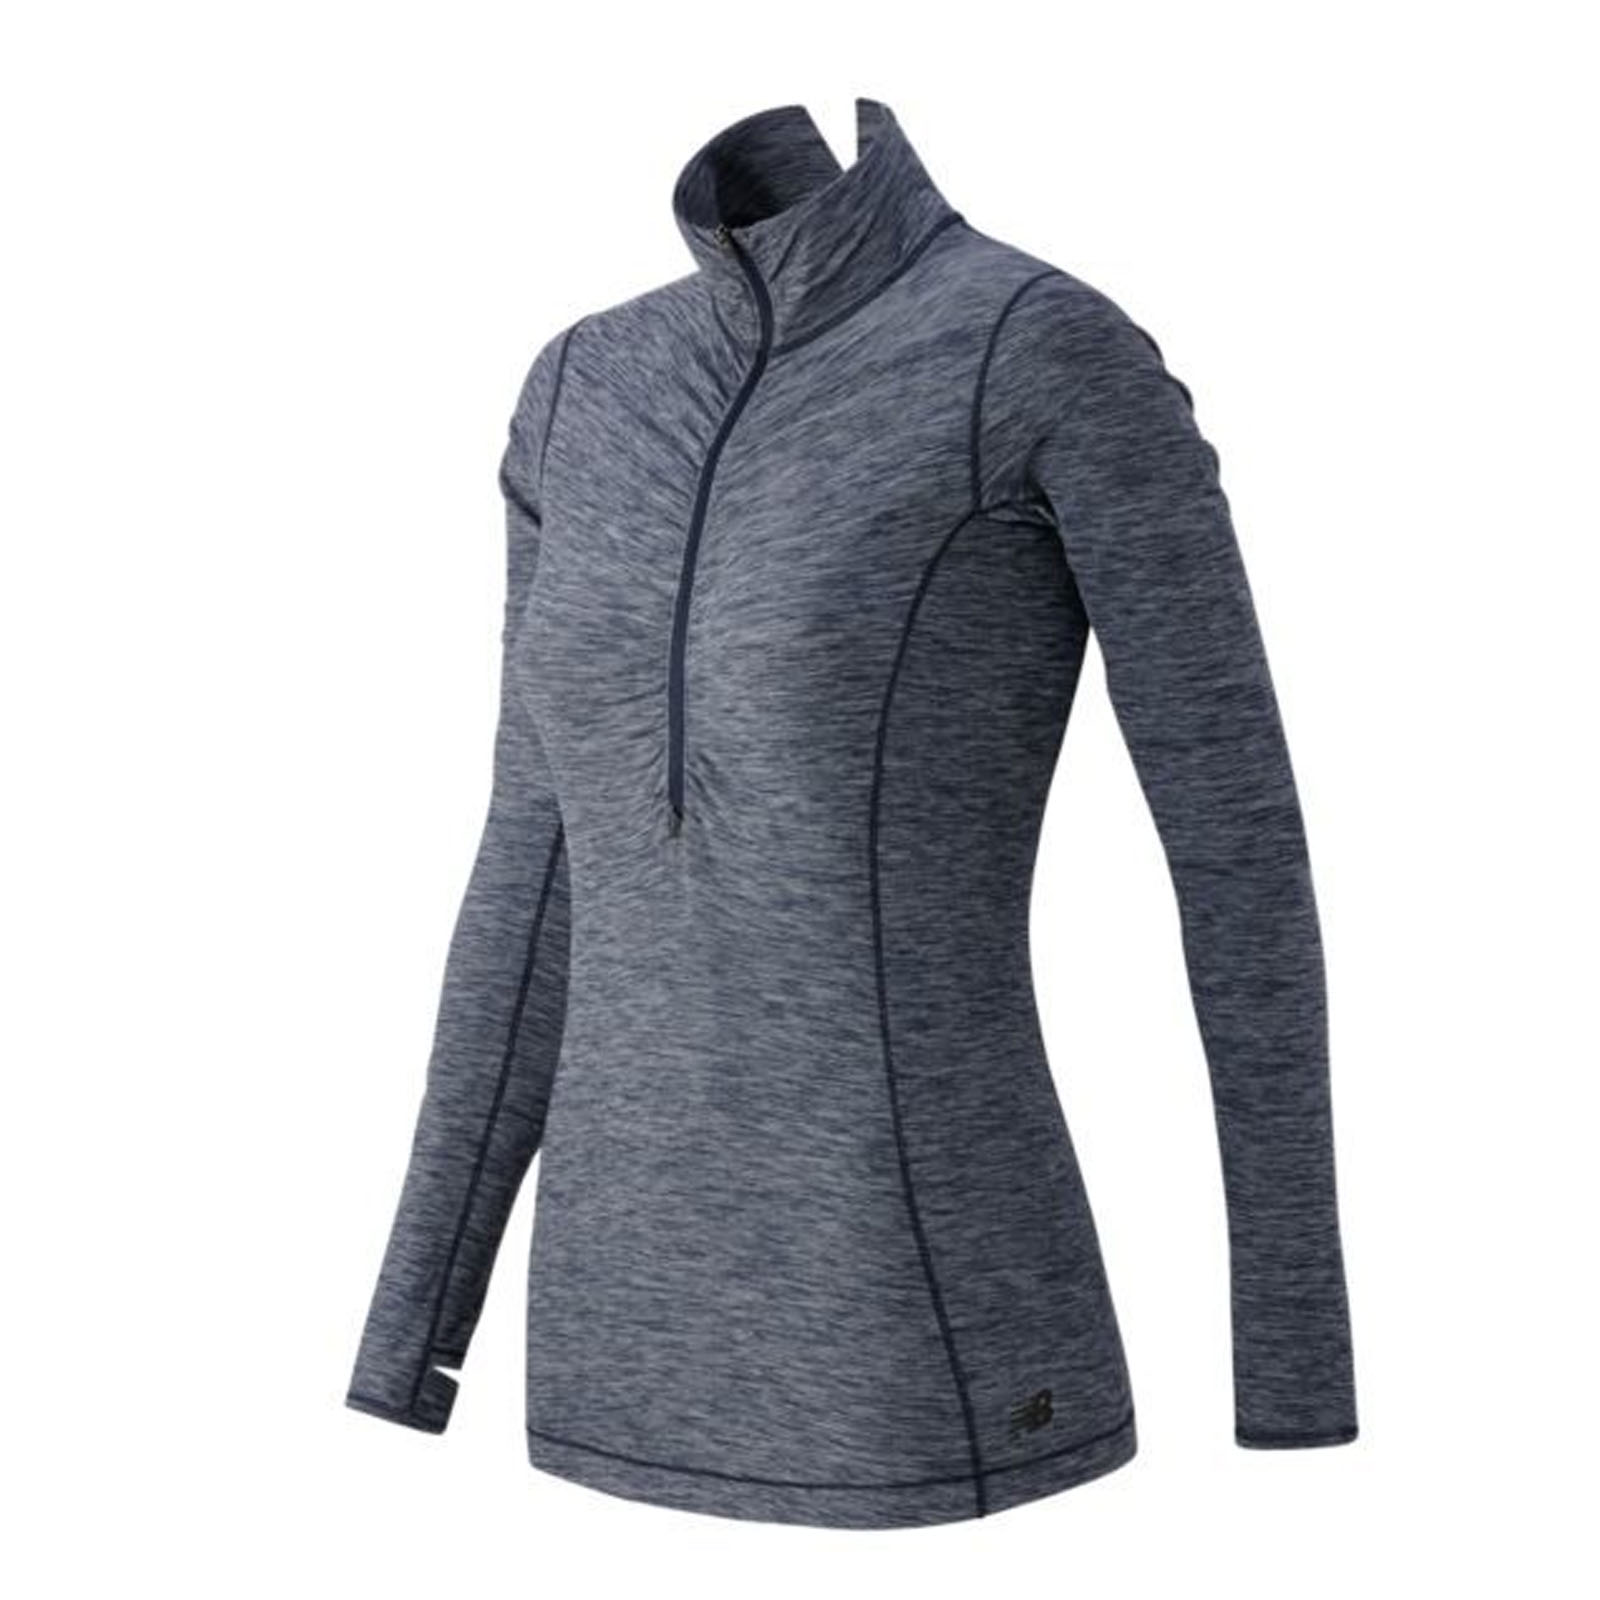 bed7f21e75b85 h m s Remaining. NEW BALANCE In Transit Half Zip Activewear Gym ...